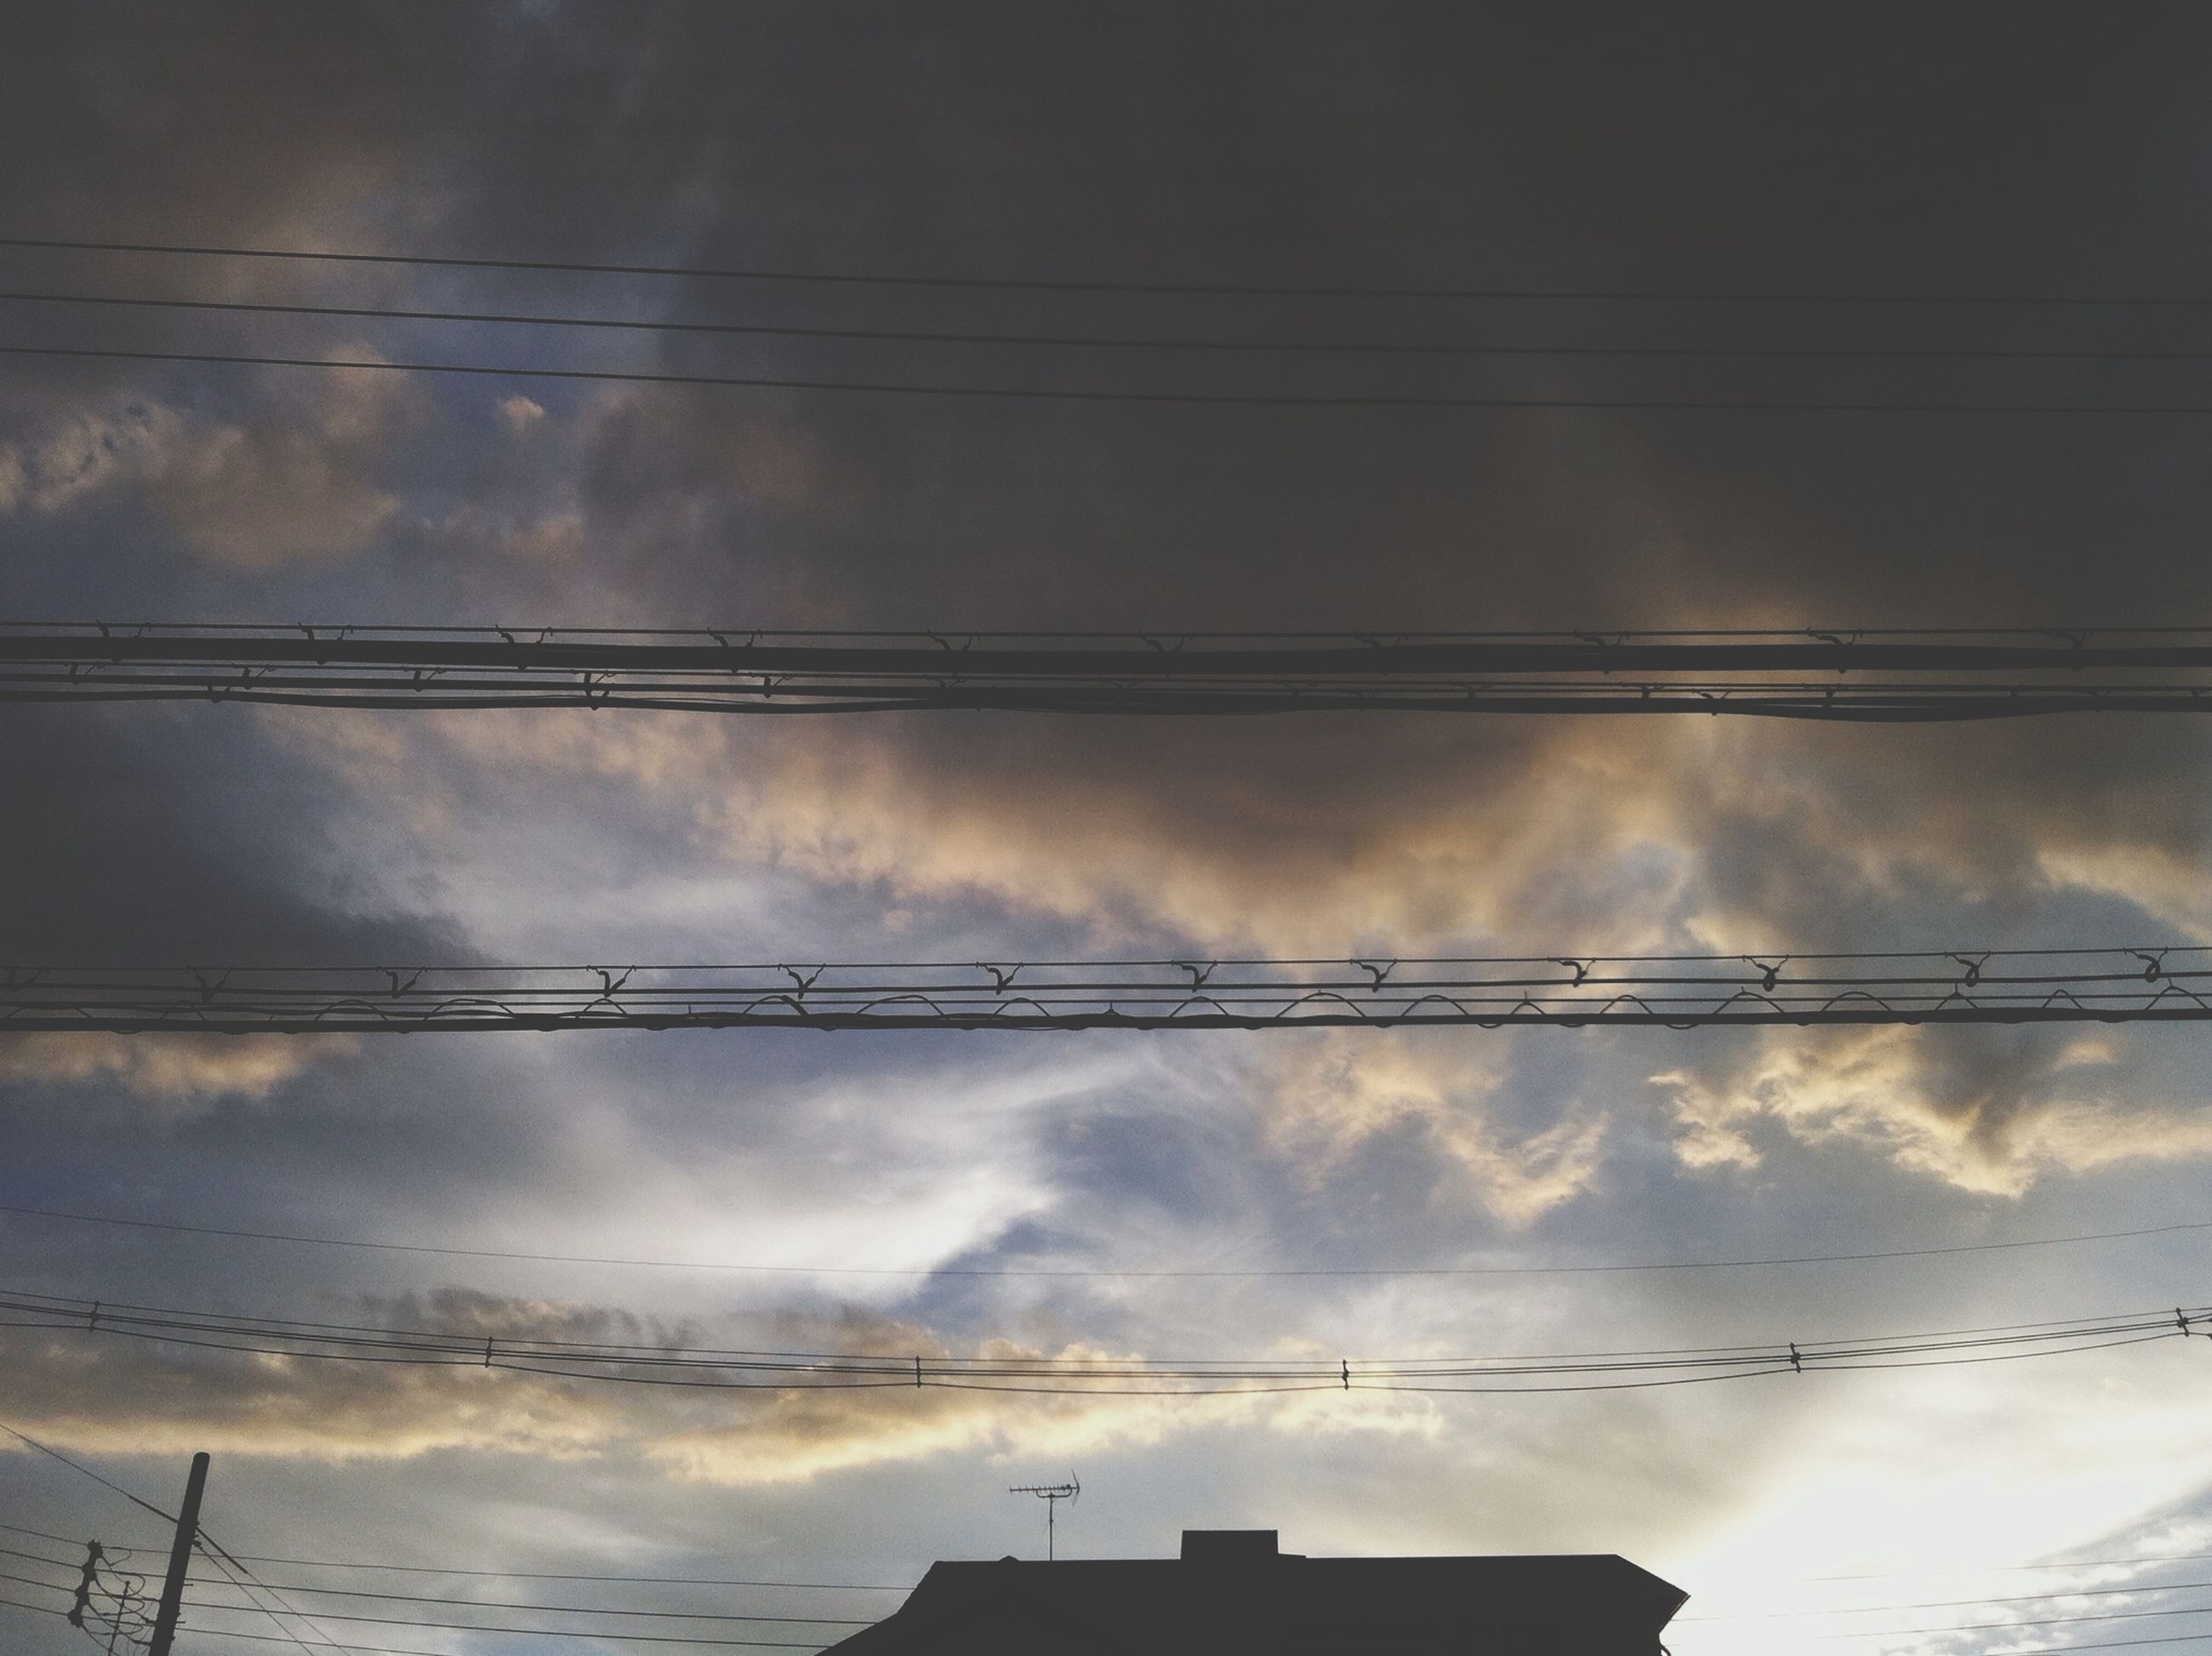 low angle view, sky, cloud - sky, power line, cloudy, built structure, architecture, cable, silhouette, building exterior, cloud, electricity, power supply, weather, connection, high section, electricity pylon, nature, outdoors, power cable